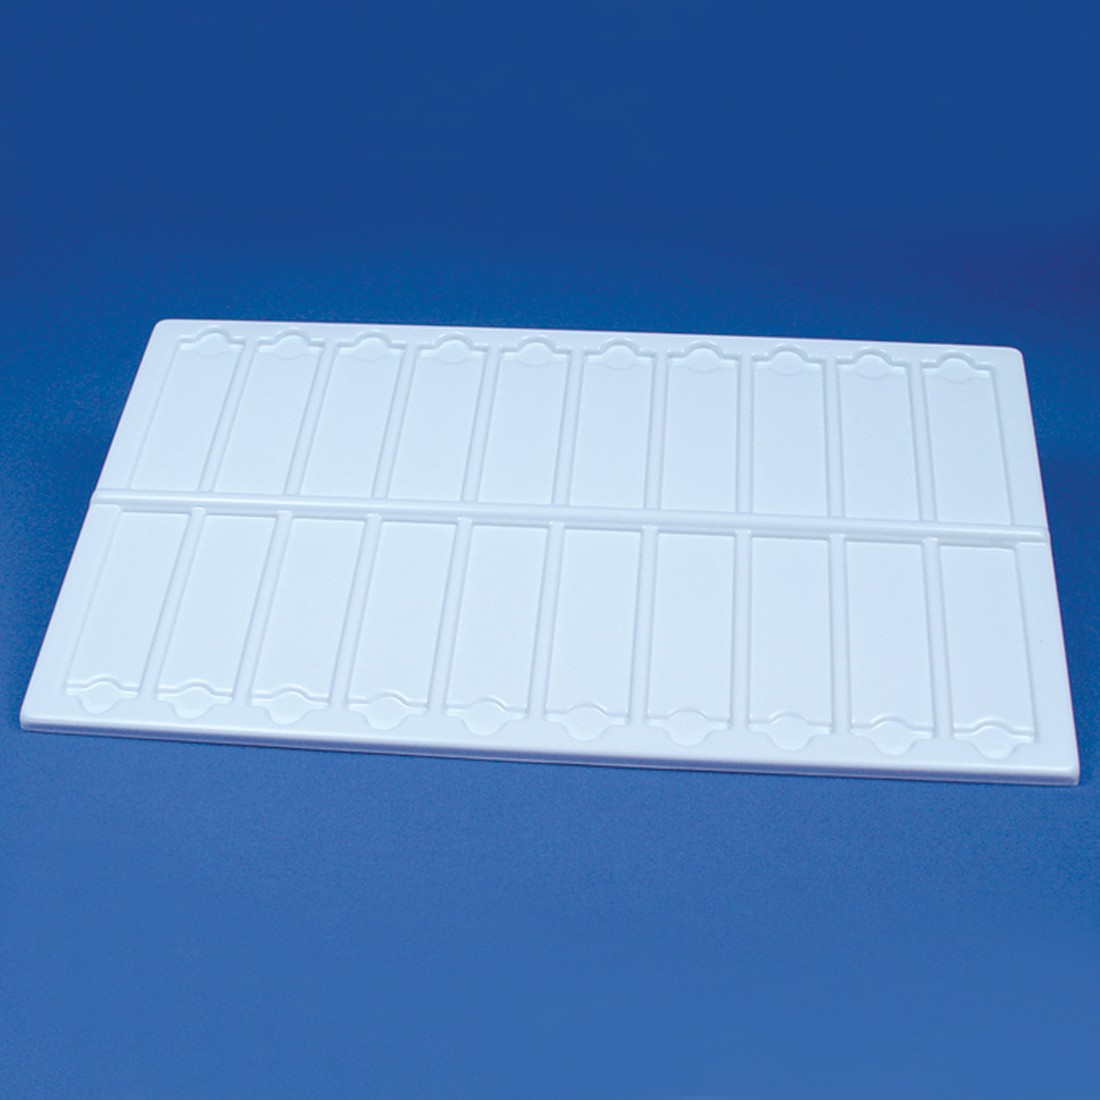 Microscope Slide Temporary Storage Tray